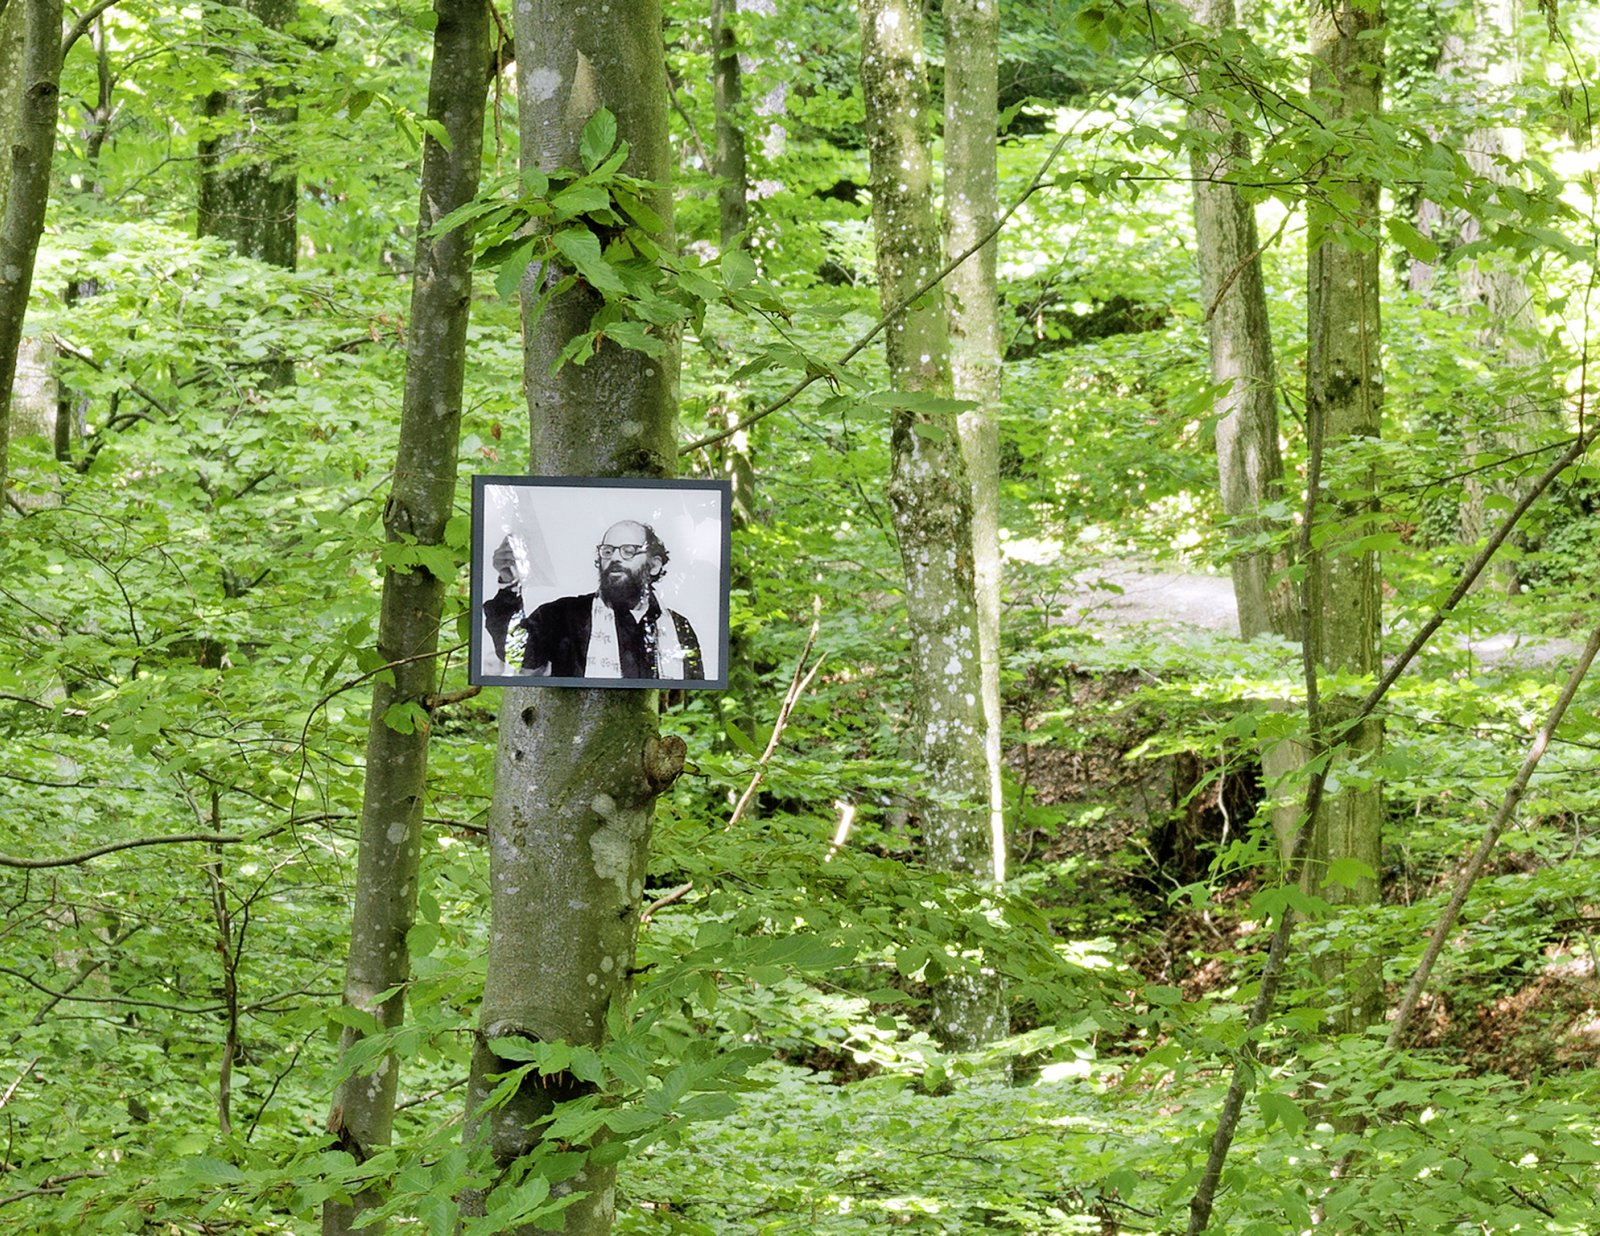 Geoffrey Farmer,If You Want To See Something Look at Something Else (Allen Ginsberg 1926–1997)fromThe Invisible Worm that Flies in the Night, 2011, 50 colour photographs mounted on perspex, framed, dimensions variable. Installation view,The Garden of Forking Paths, Migros Museum für Gegenwartskunst, Zurich, 2011